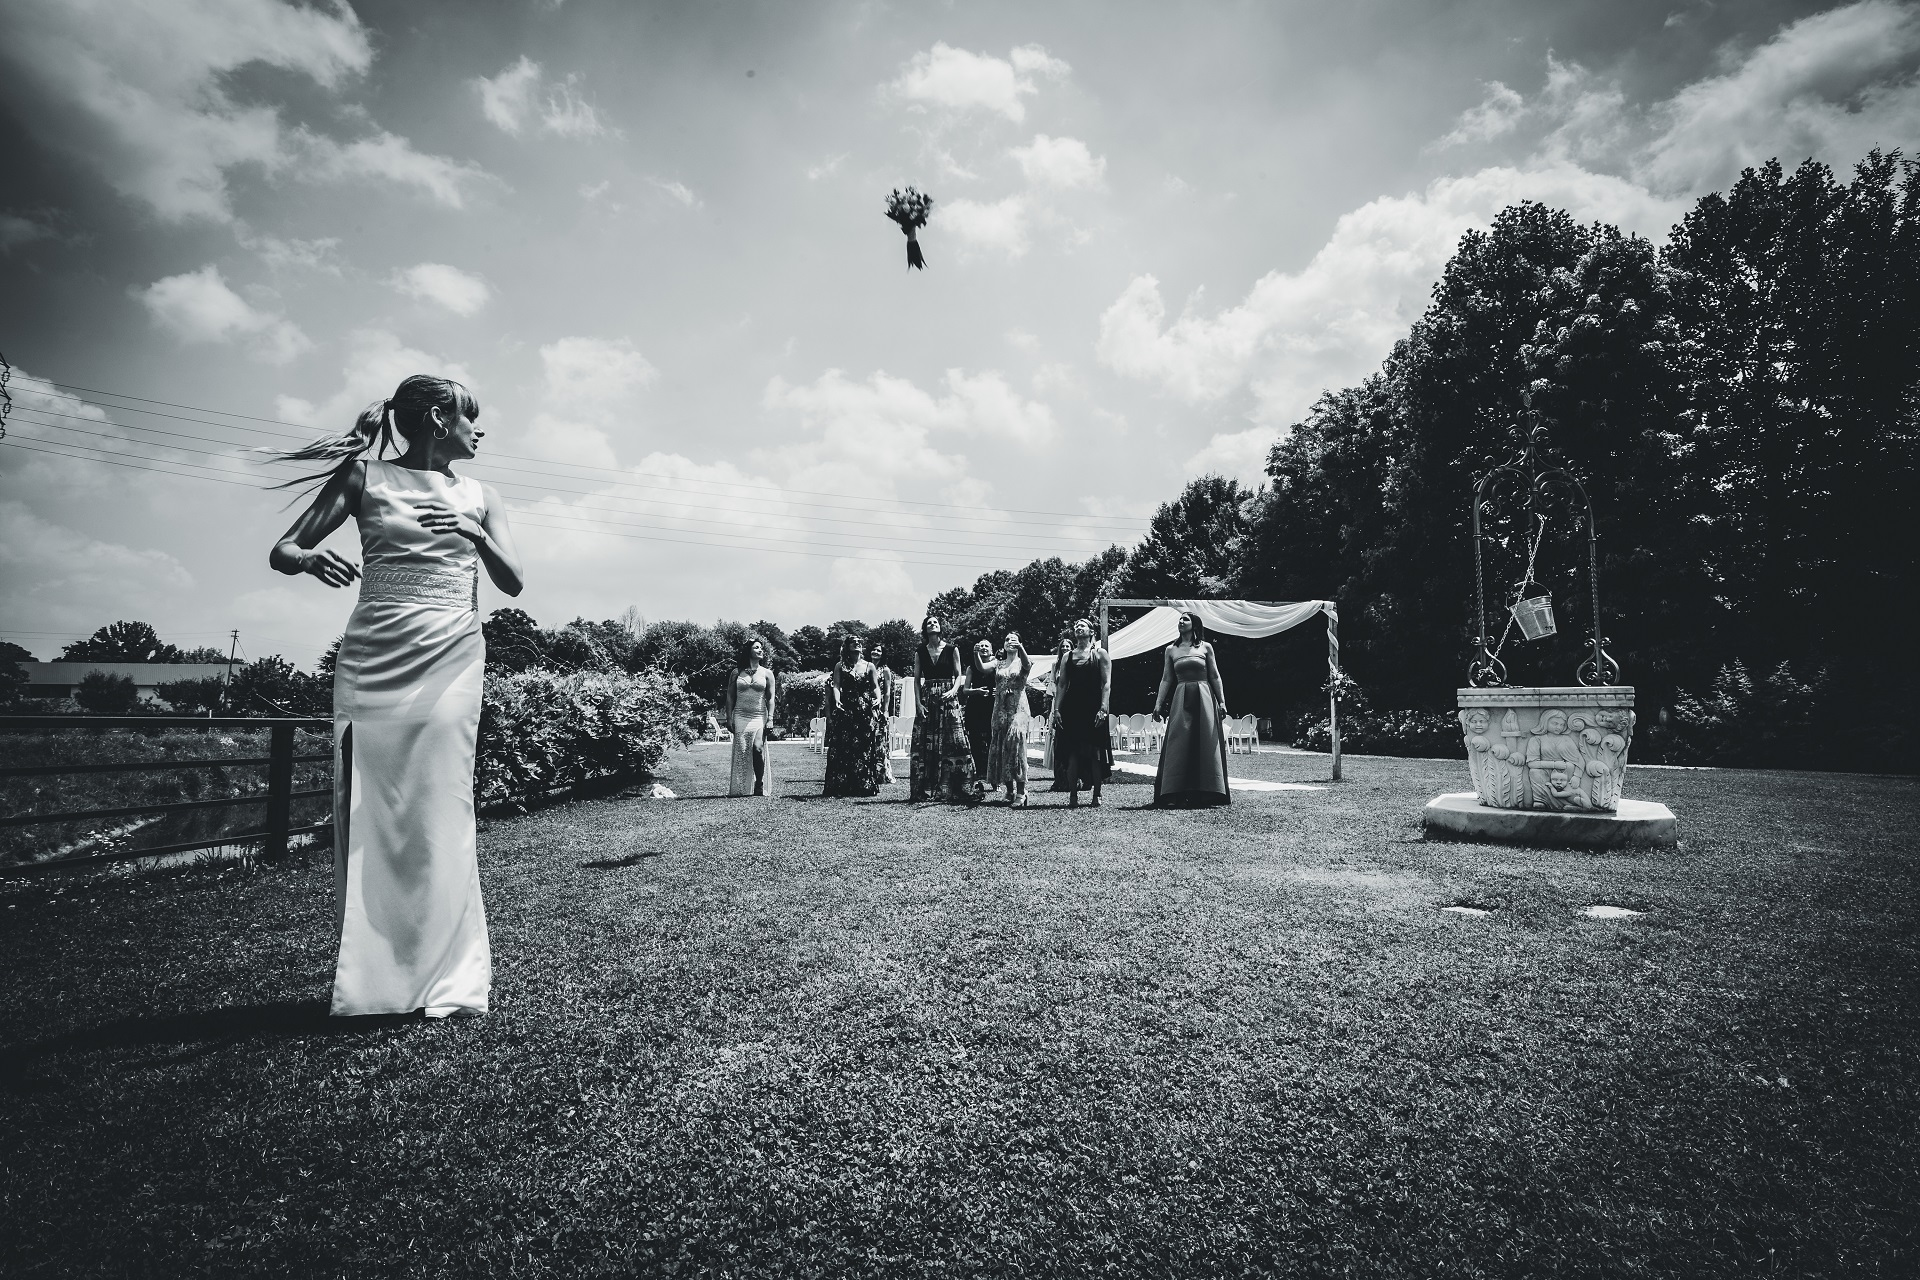 Padua, Italy Elopement Bouquet Toss Photo in Black and White | The bride tosses her bouquet to the guests standing behind her